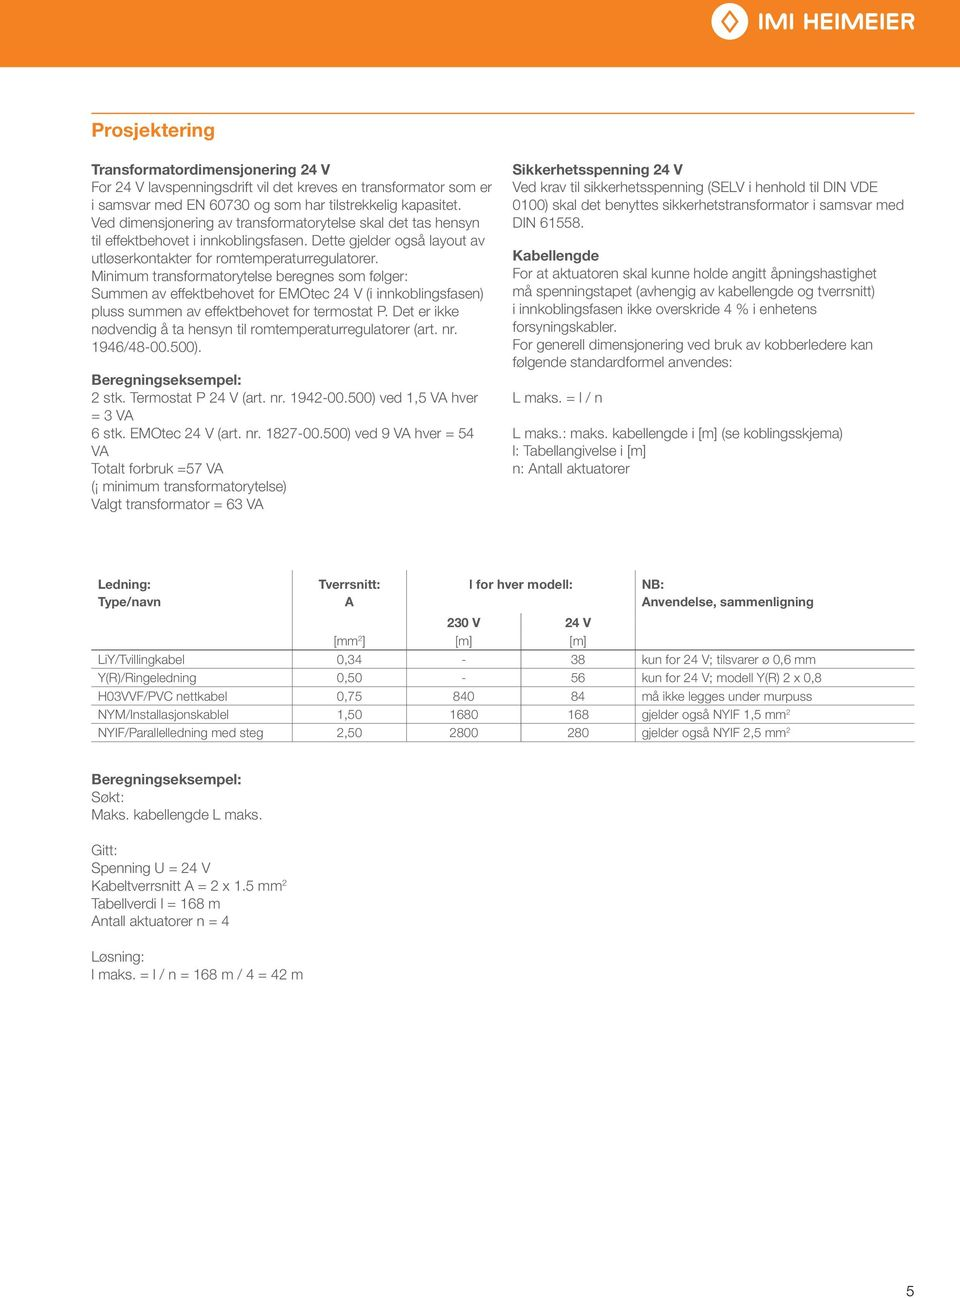 Minimum transformatorytelse beregnes som følger: Summen av effektbehovet for EMOtec 24 V (i innkoblingsfasen) pluss summen av effektbehovet for termostat P.